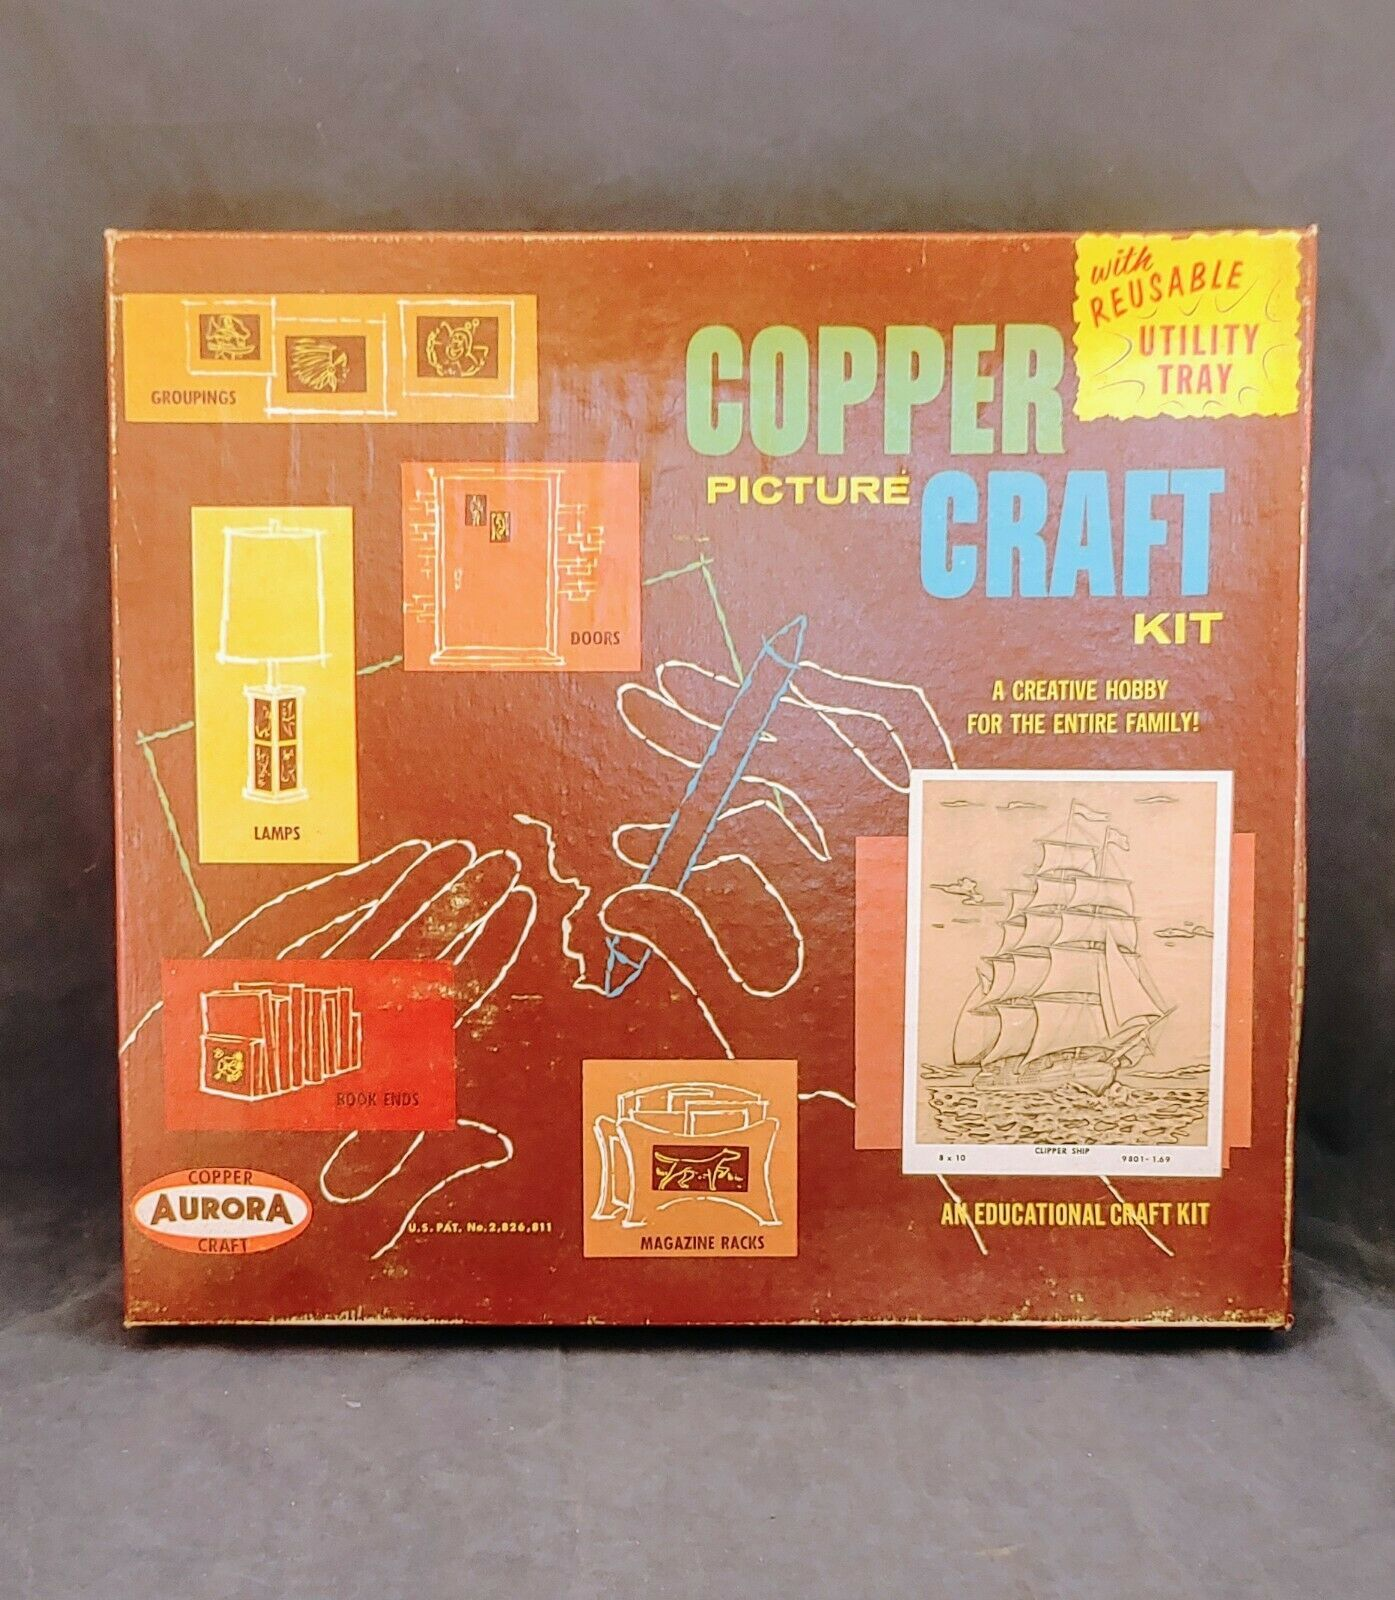 Vintage Aurora Copper Picture Craft Kits 1961.  - $8.66